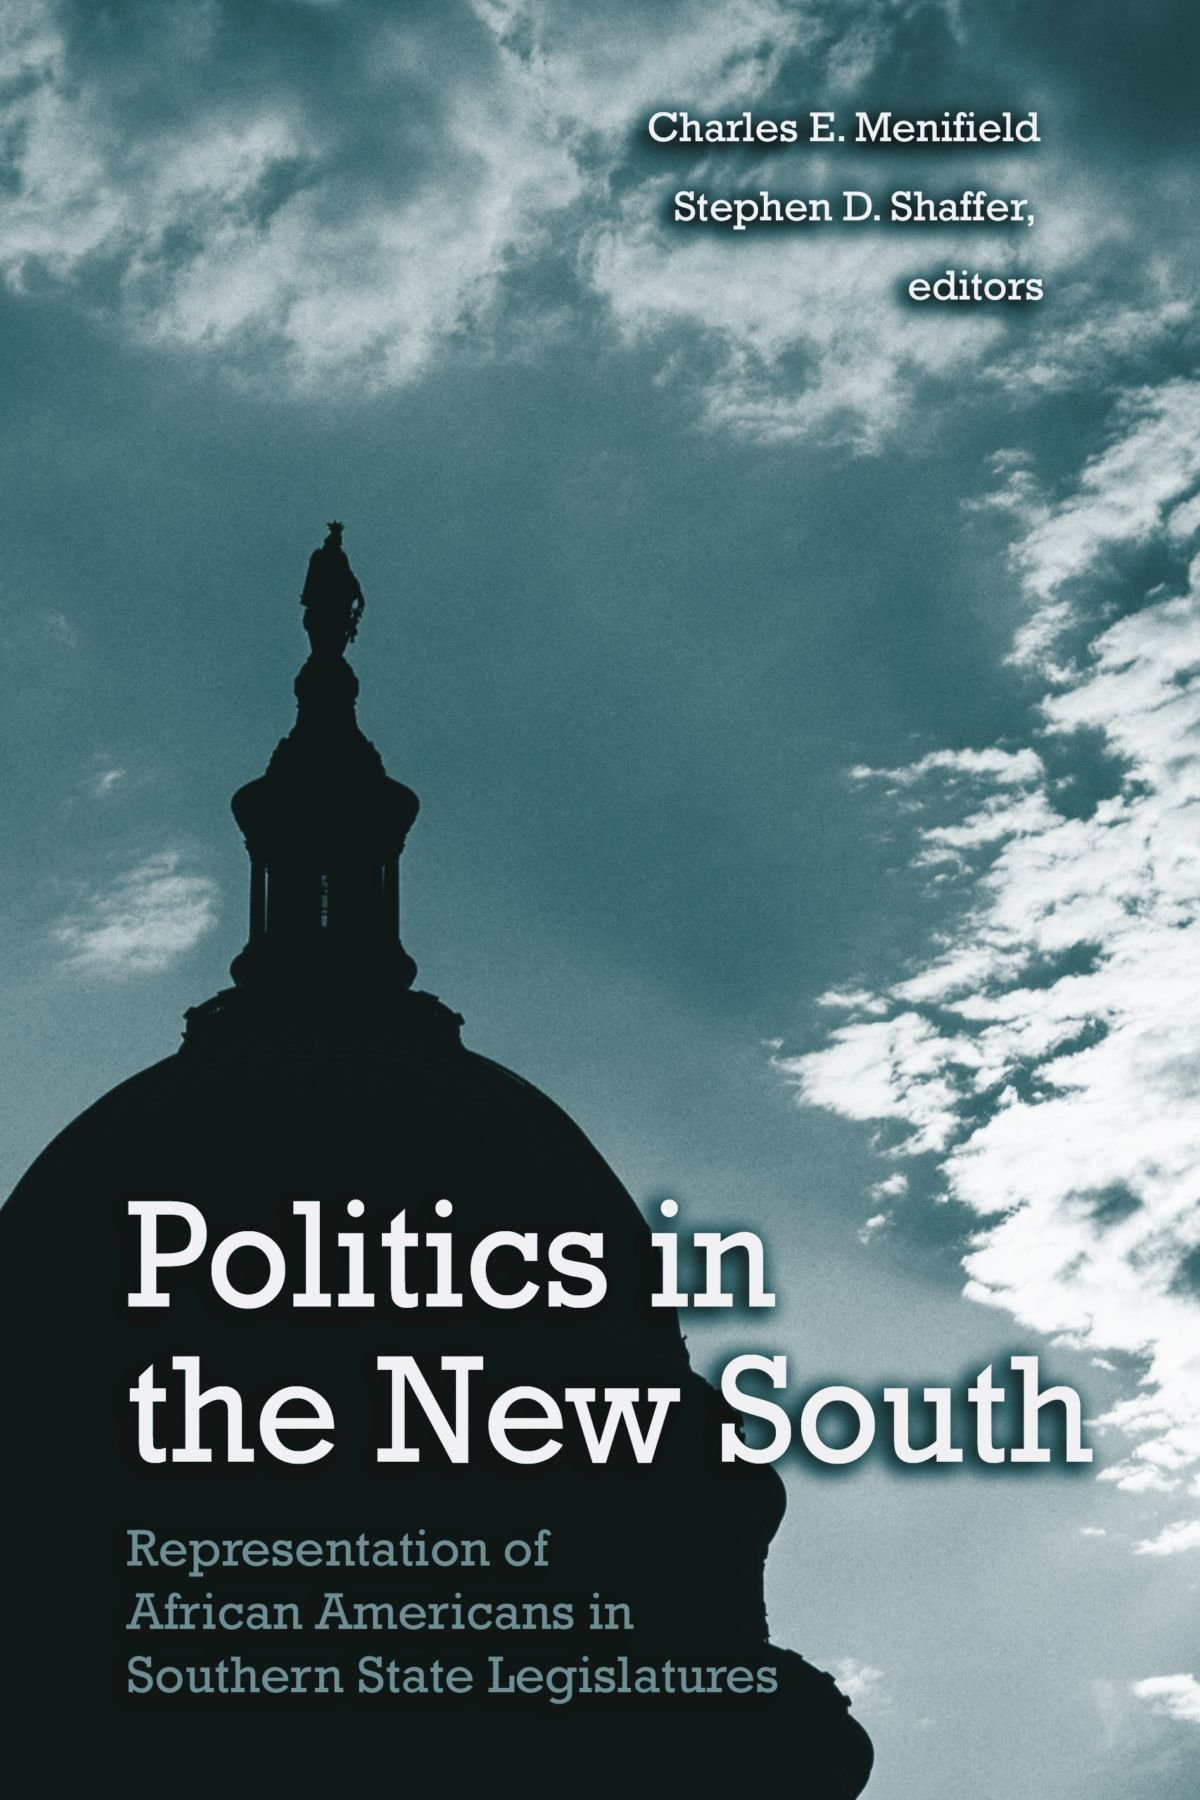 Politics in the New South: Representation of African Americans in Southern State Legislatures (SUNY series in African American Studies) PDF